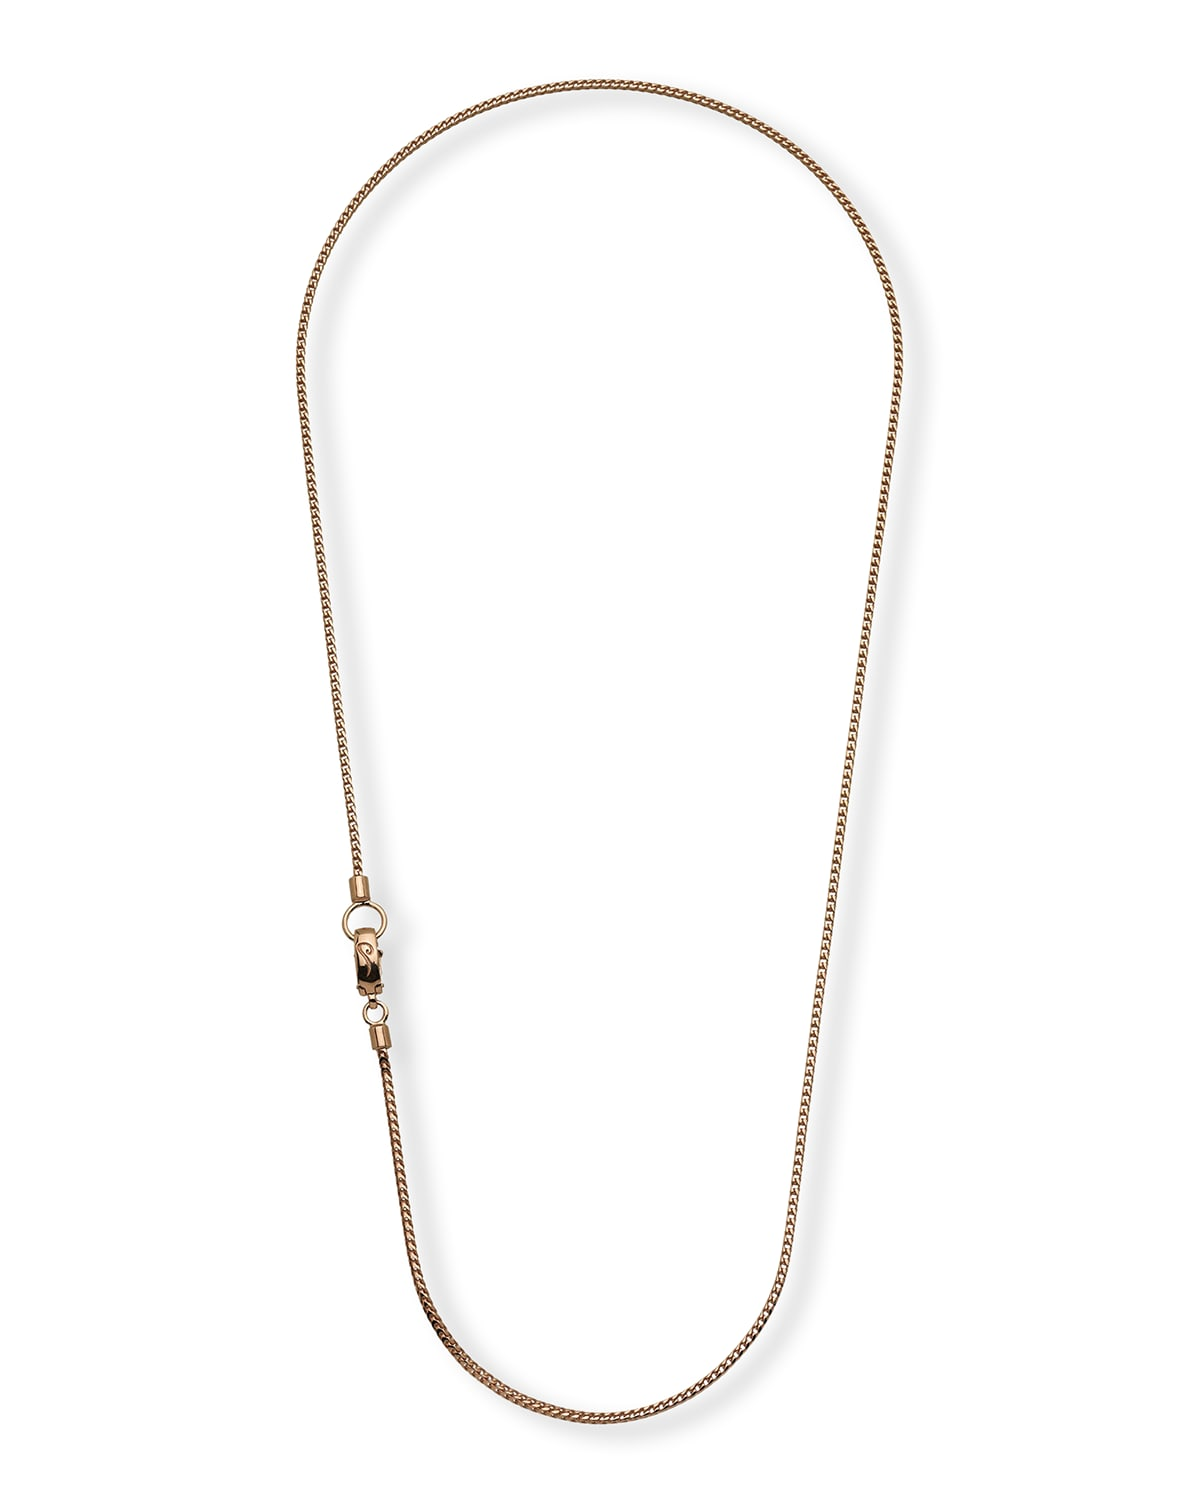 Rose Gold Plated Silver Necklace with Polished Chain